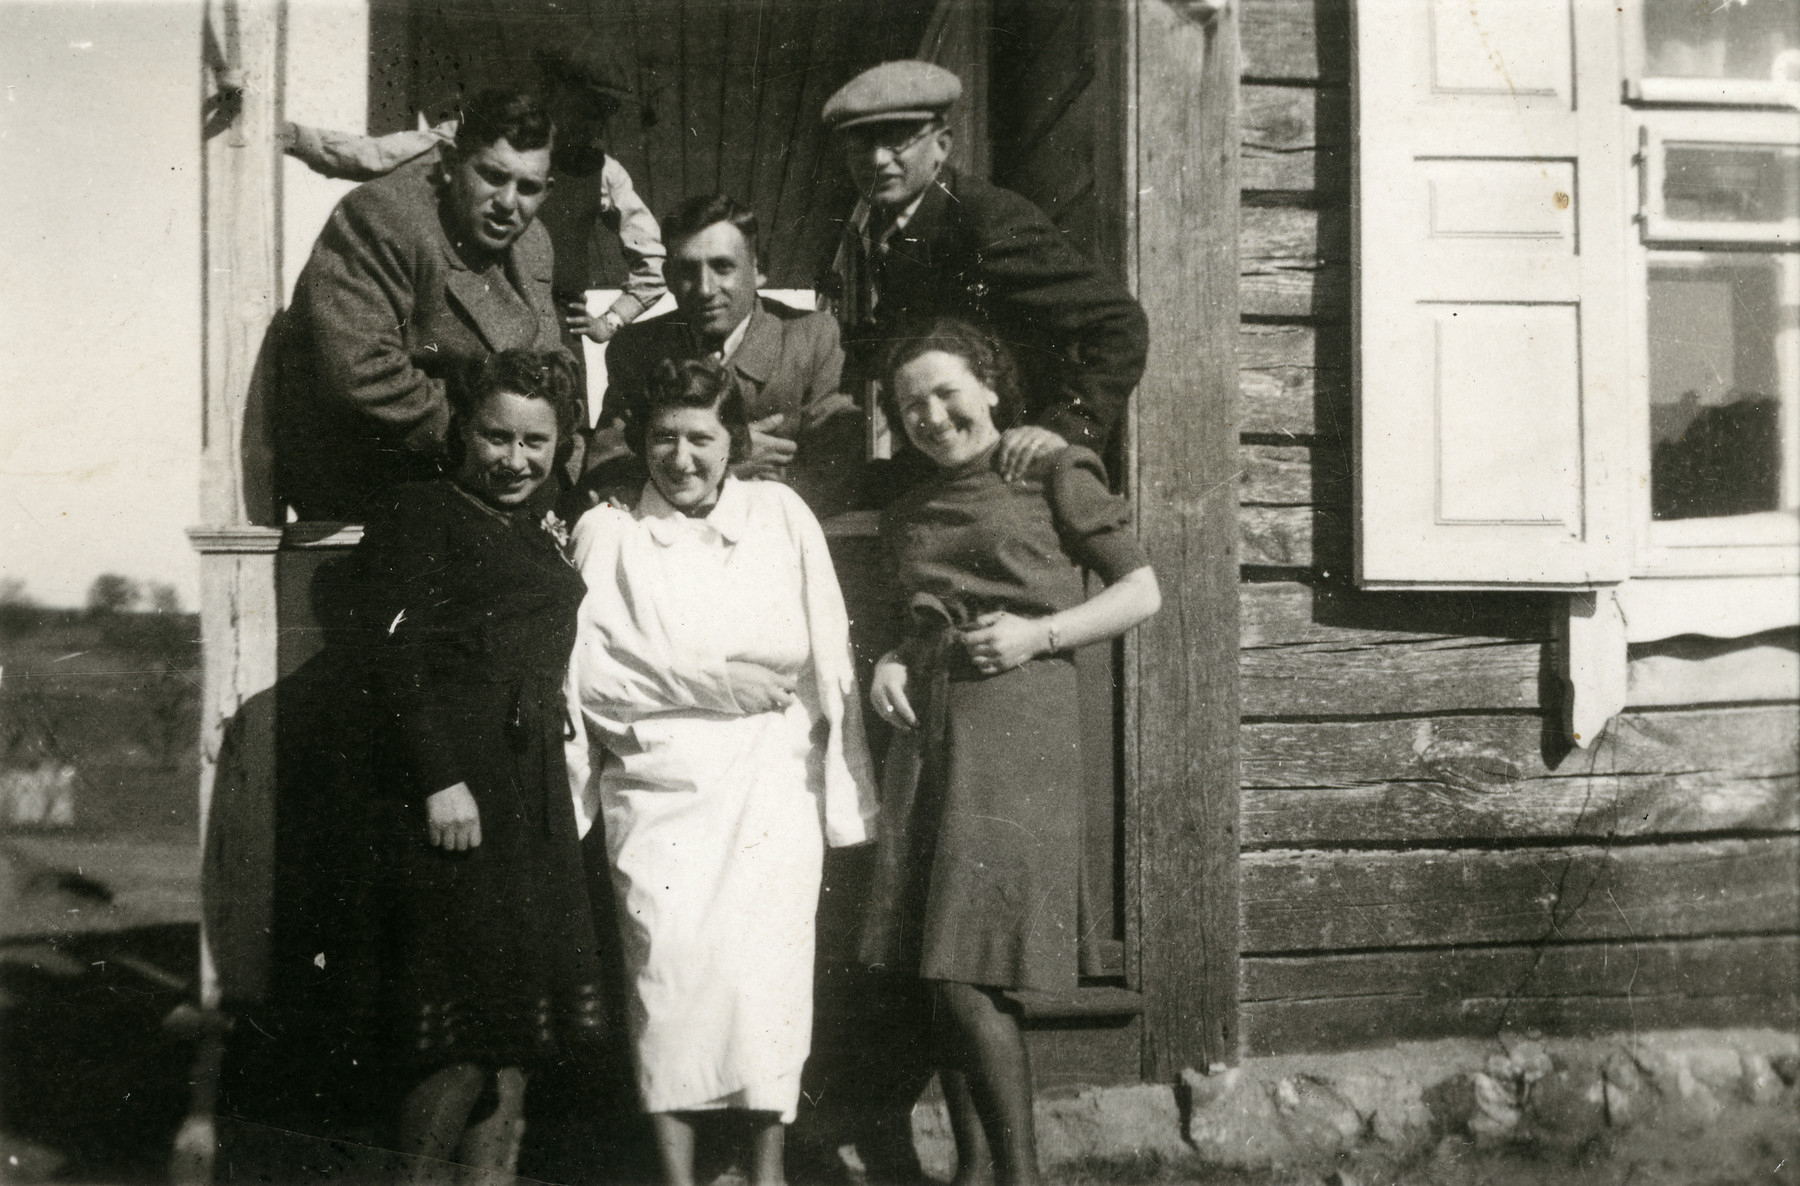 Rachel Godroff, wearing a white coat in the center, with friends in front of their house in Vievis in 1940.